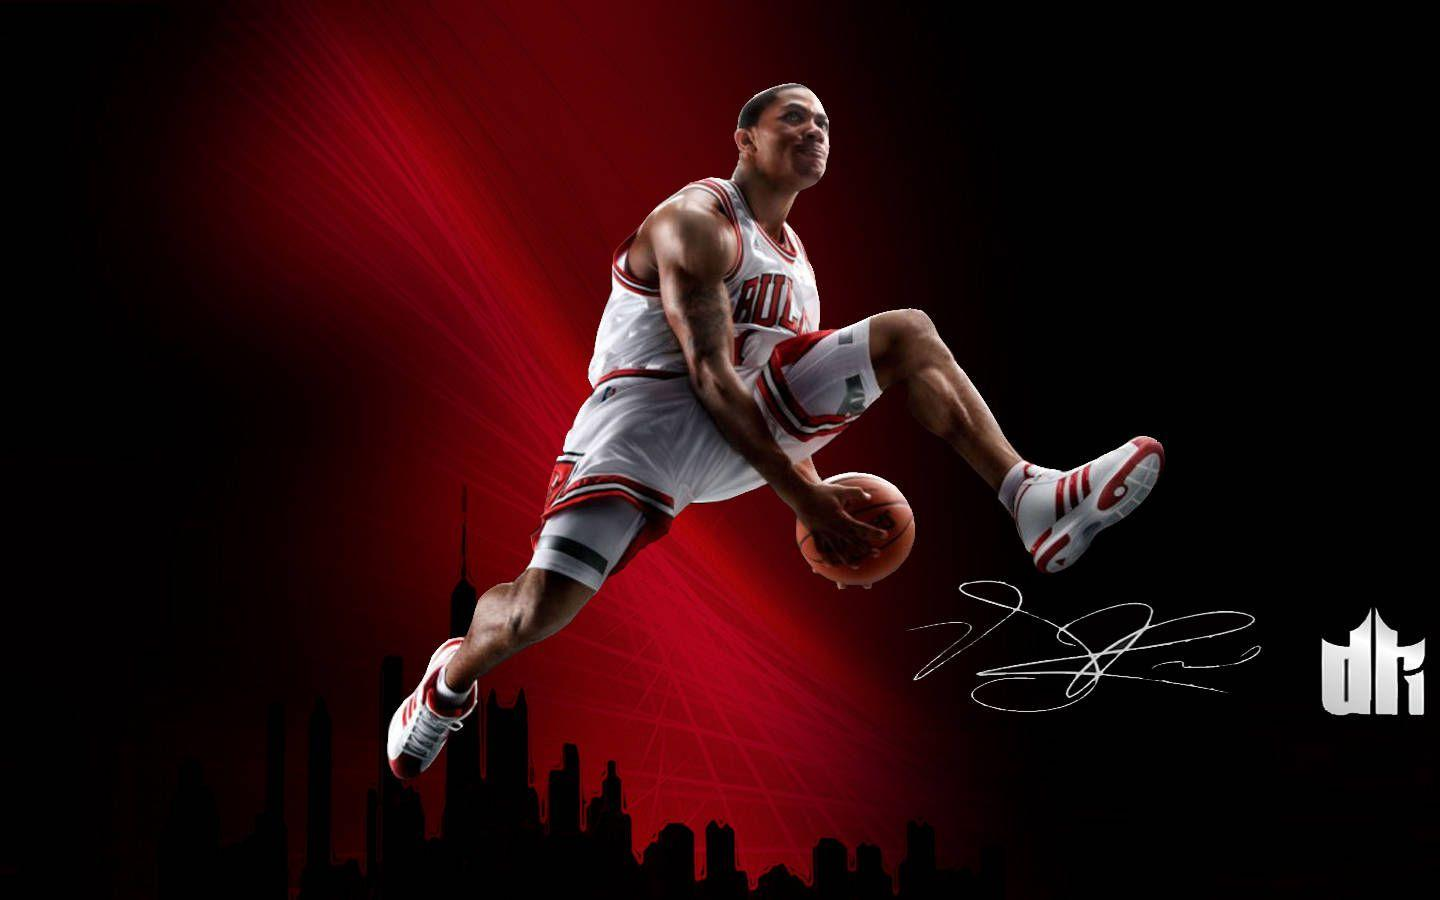 Nba Basketball Wallpapers 2016 - Wallpaper Cave Basketball Players Wallpapers White